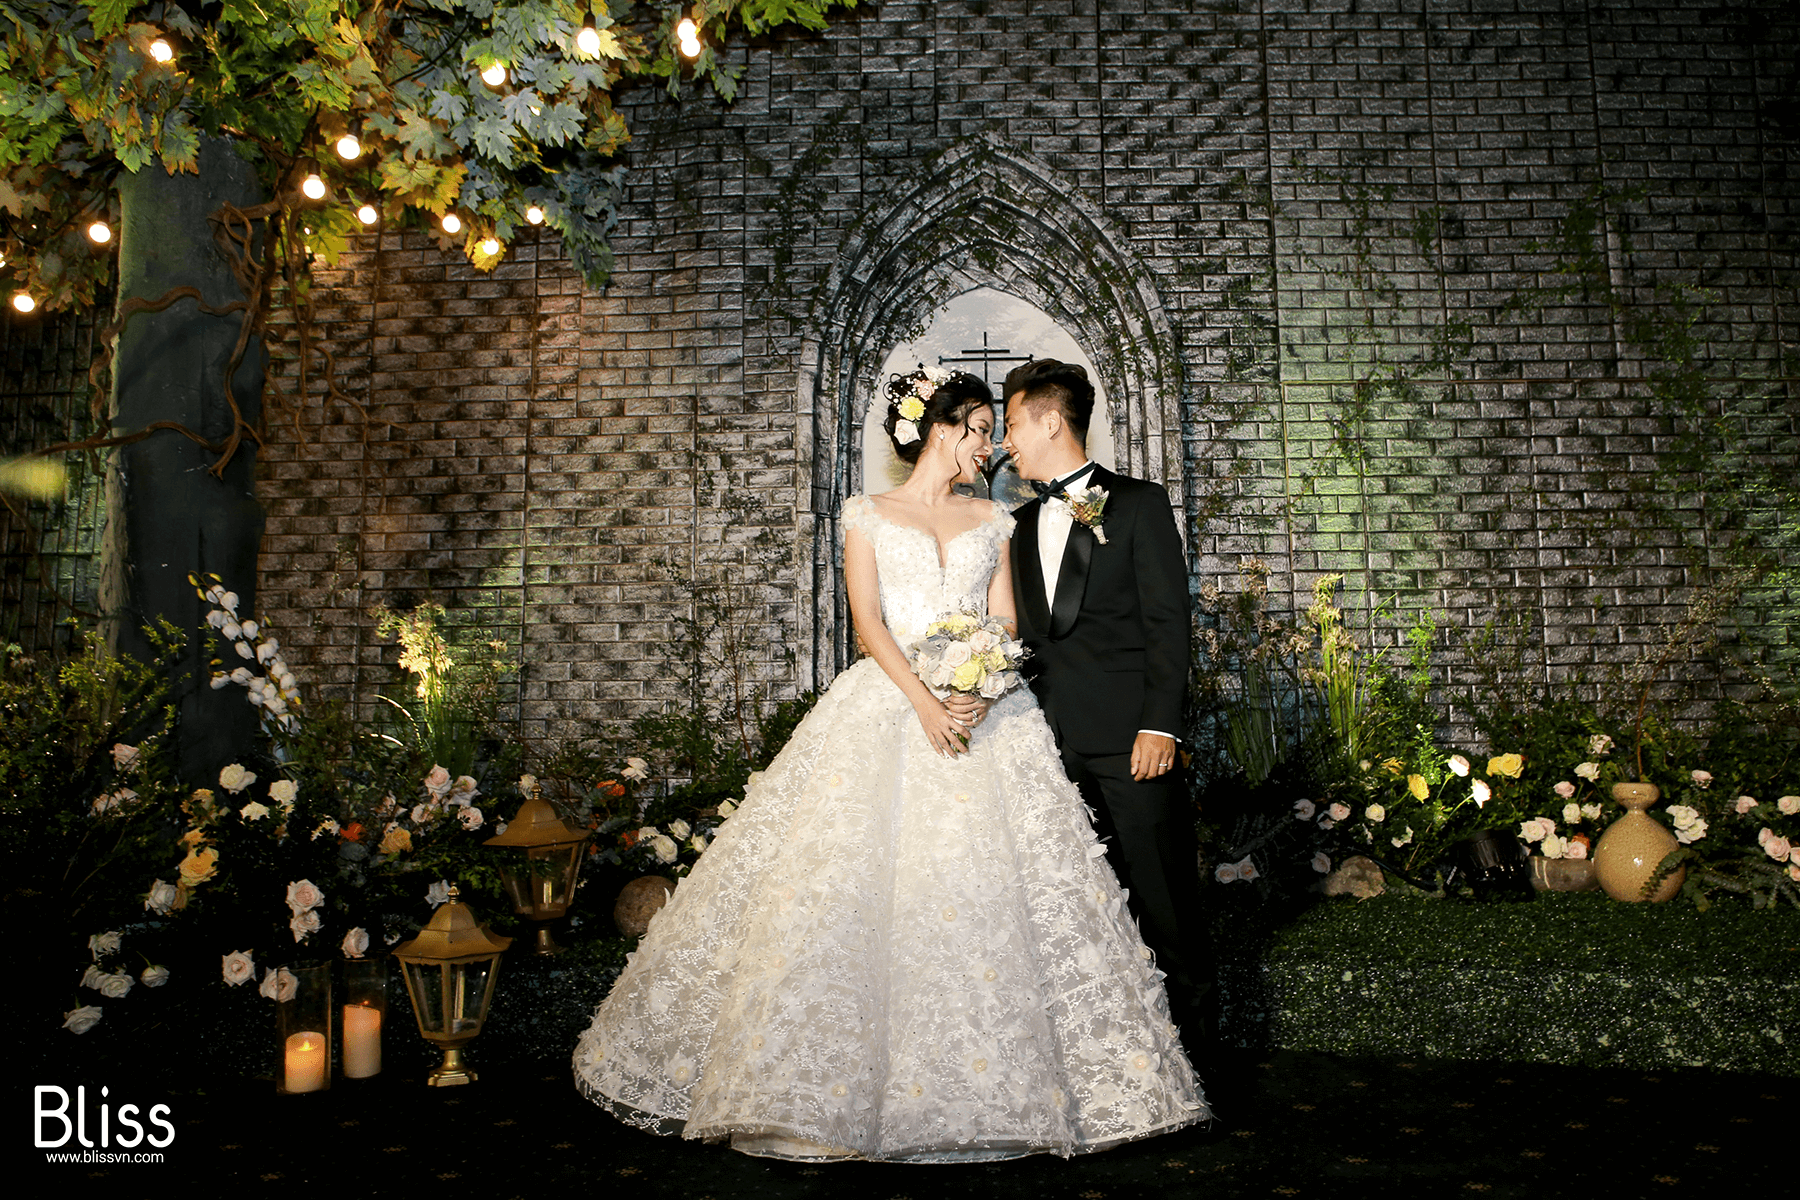 REAL WEDDING: Luxury Echanted Forest Wedding Decoration In Vietnam